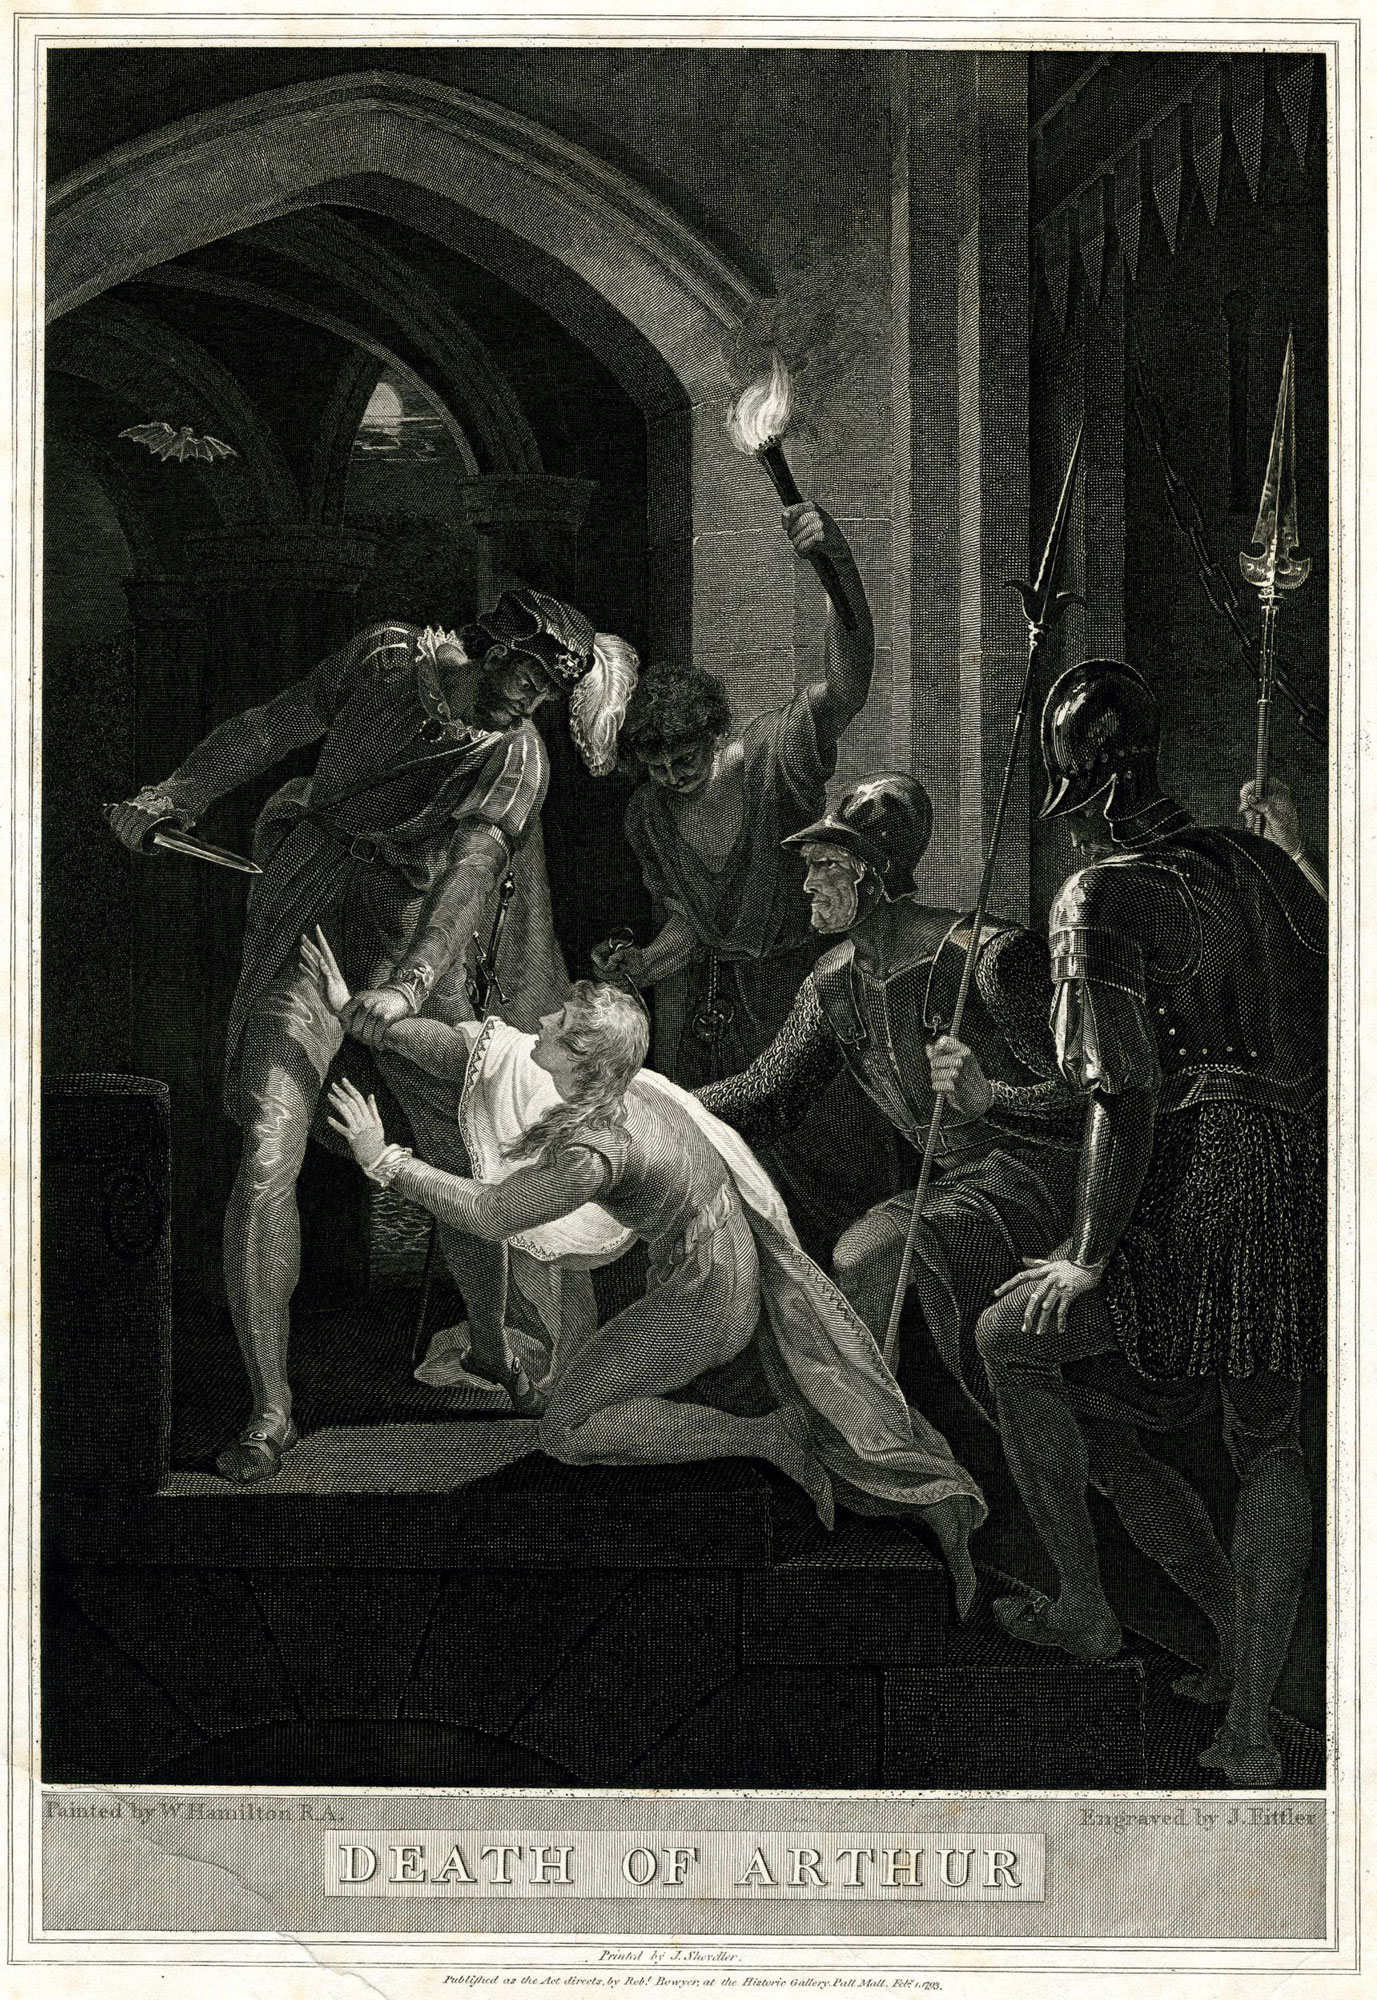 Image of the murder of Prince Arthur